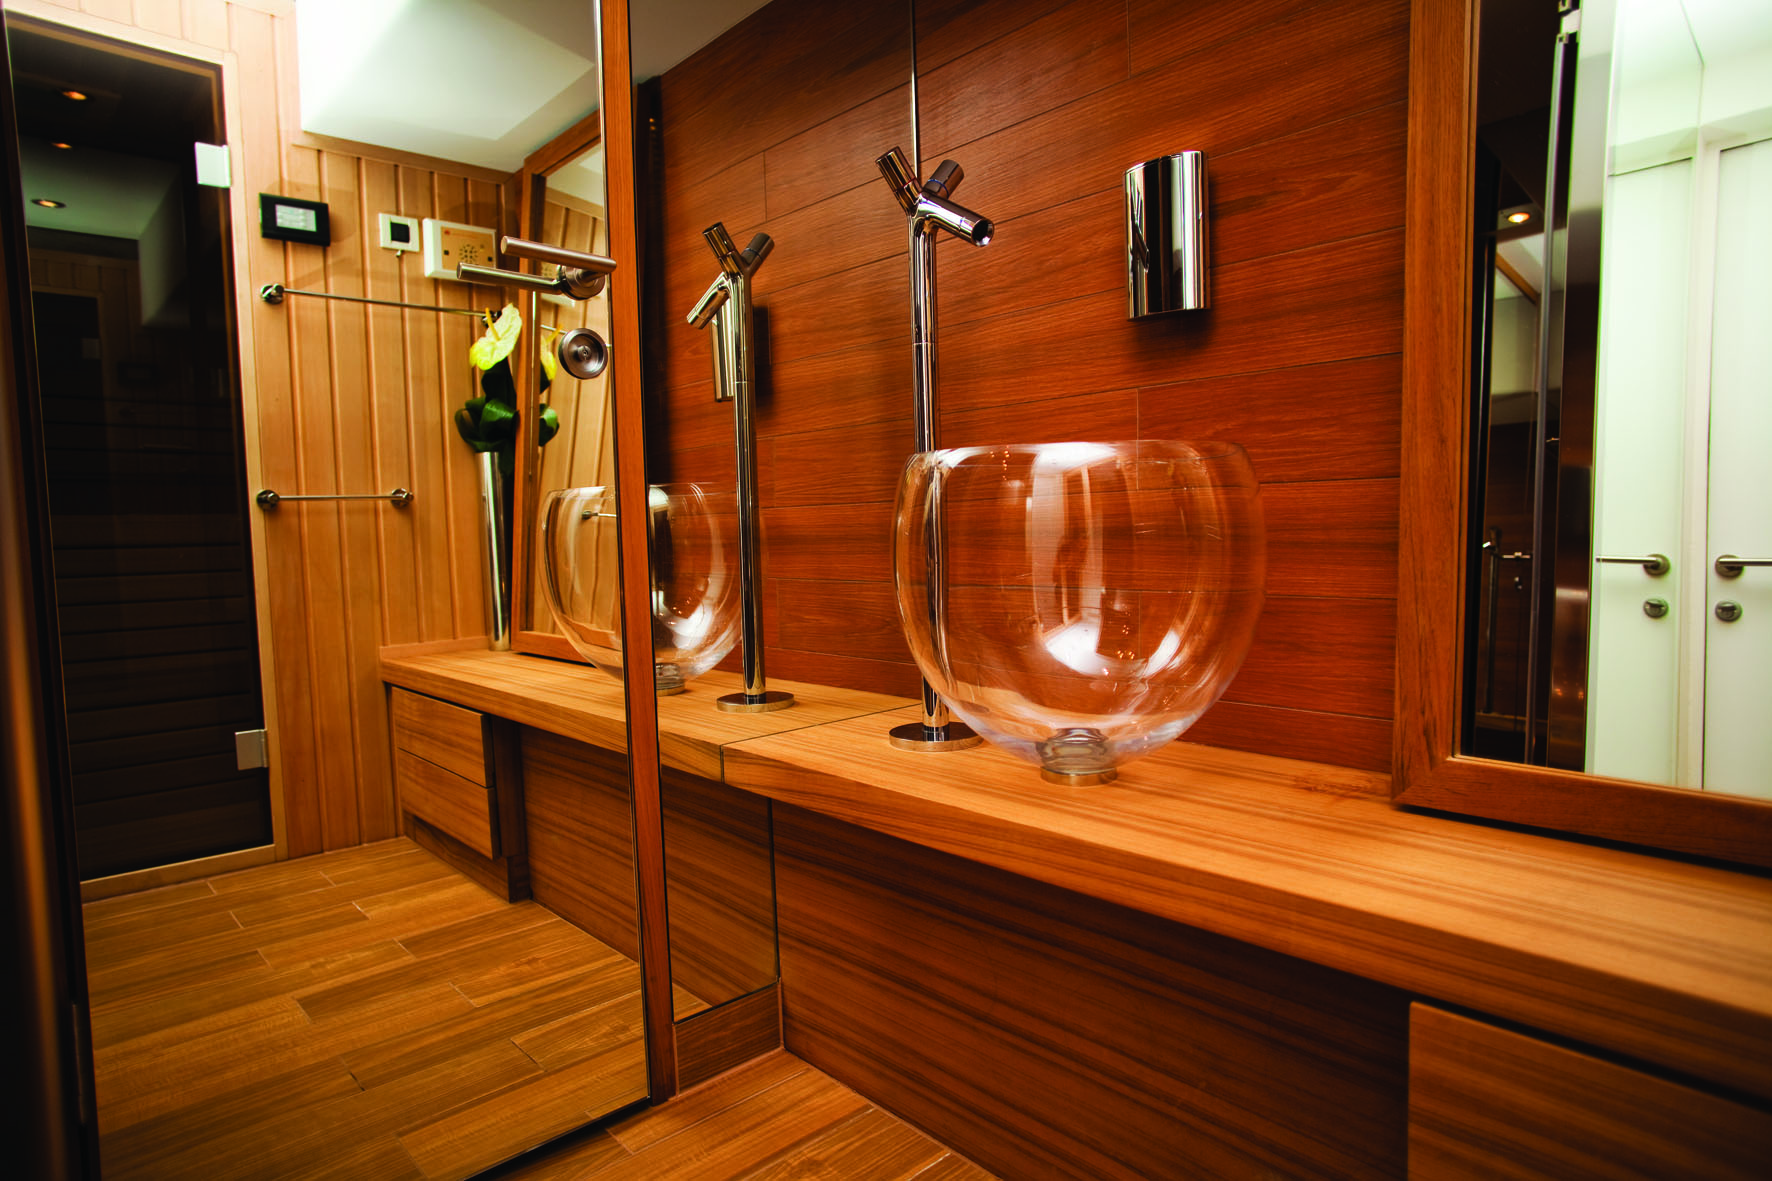 Sauna bathroom design sauna bath design view in gallery for Master bathroom with sauna